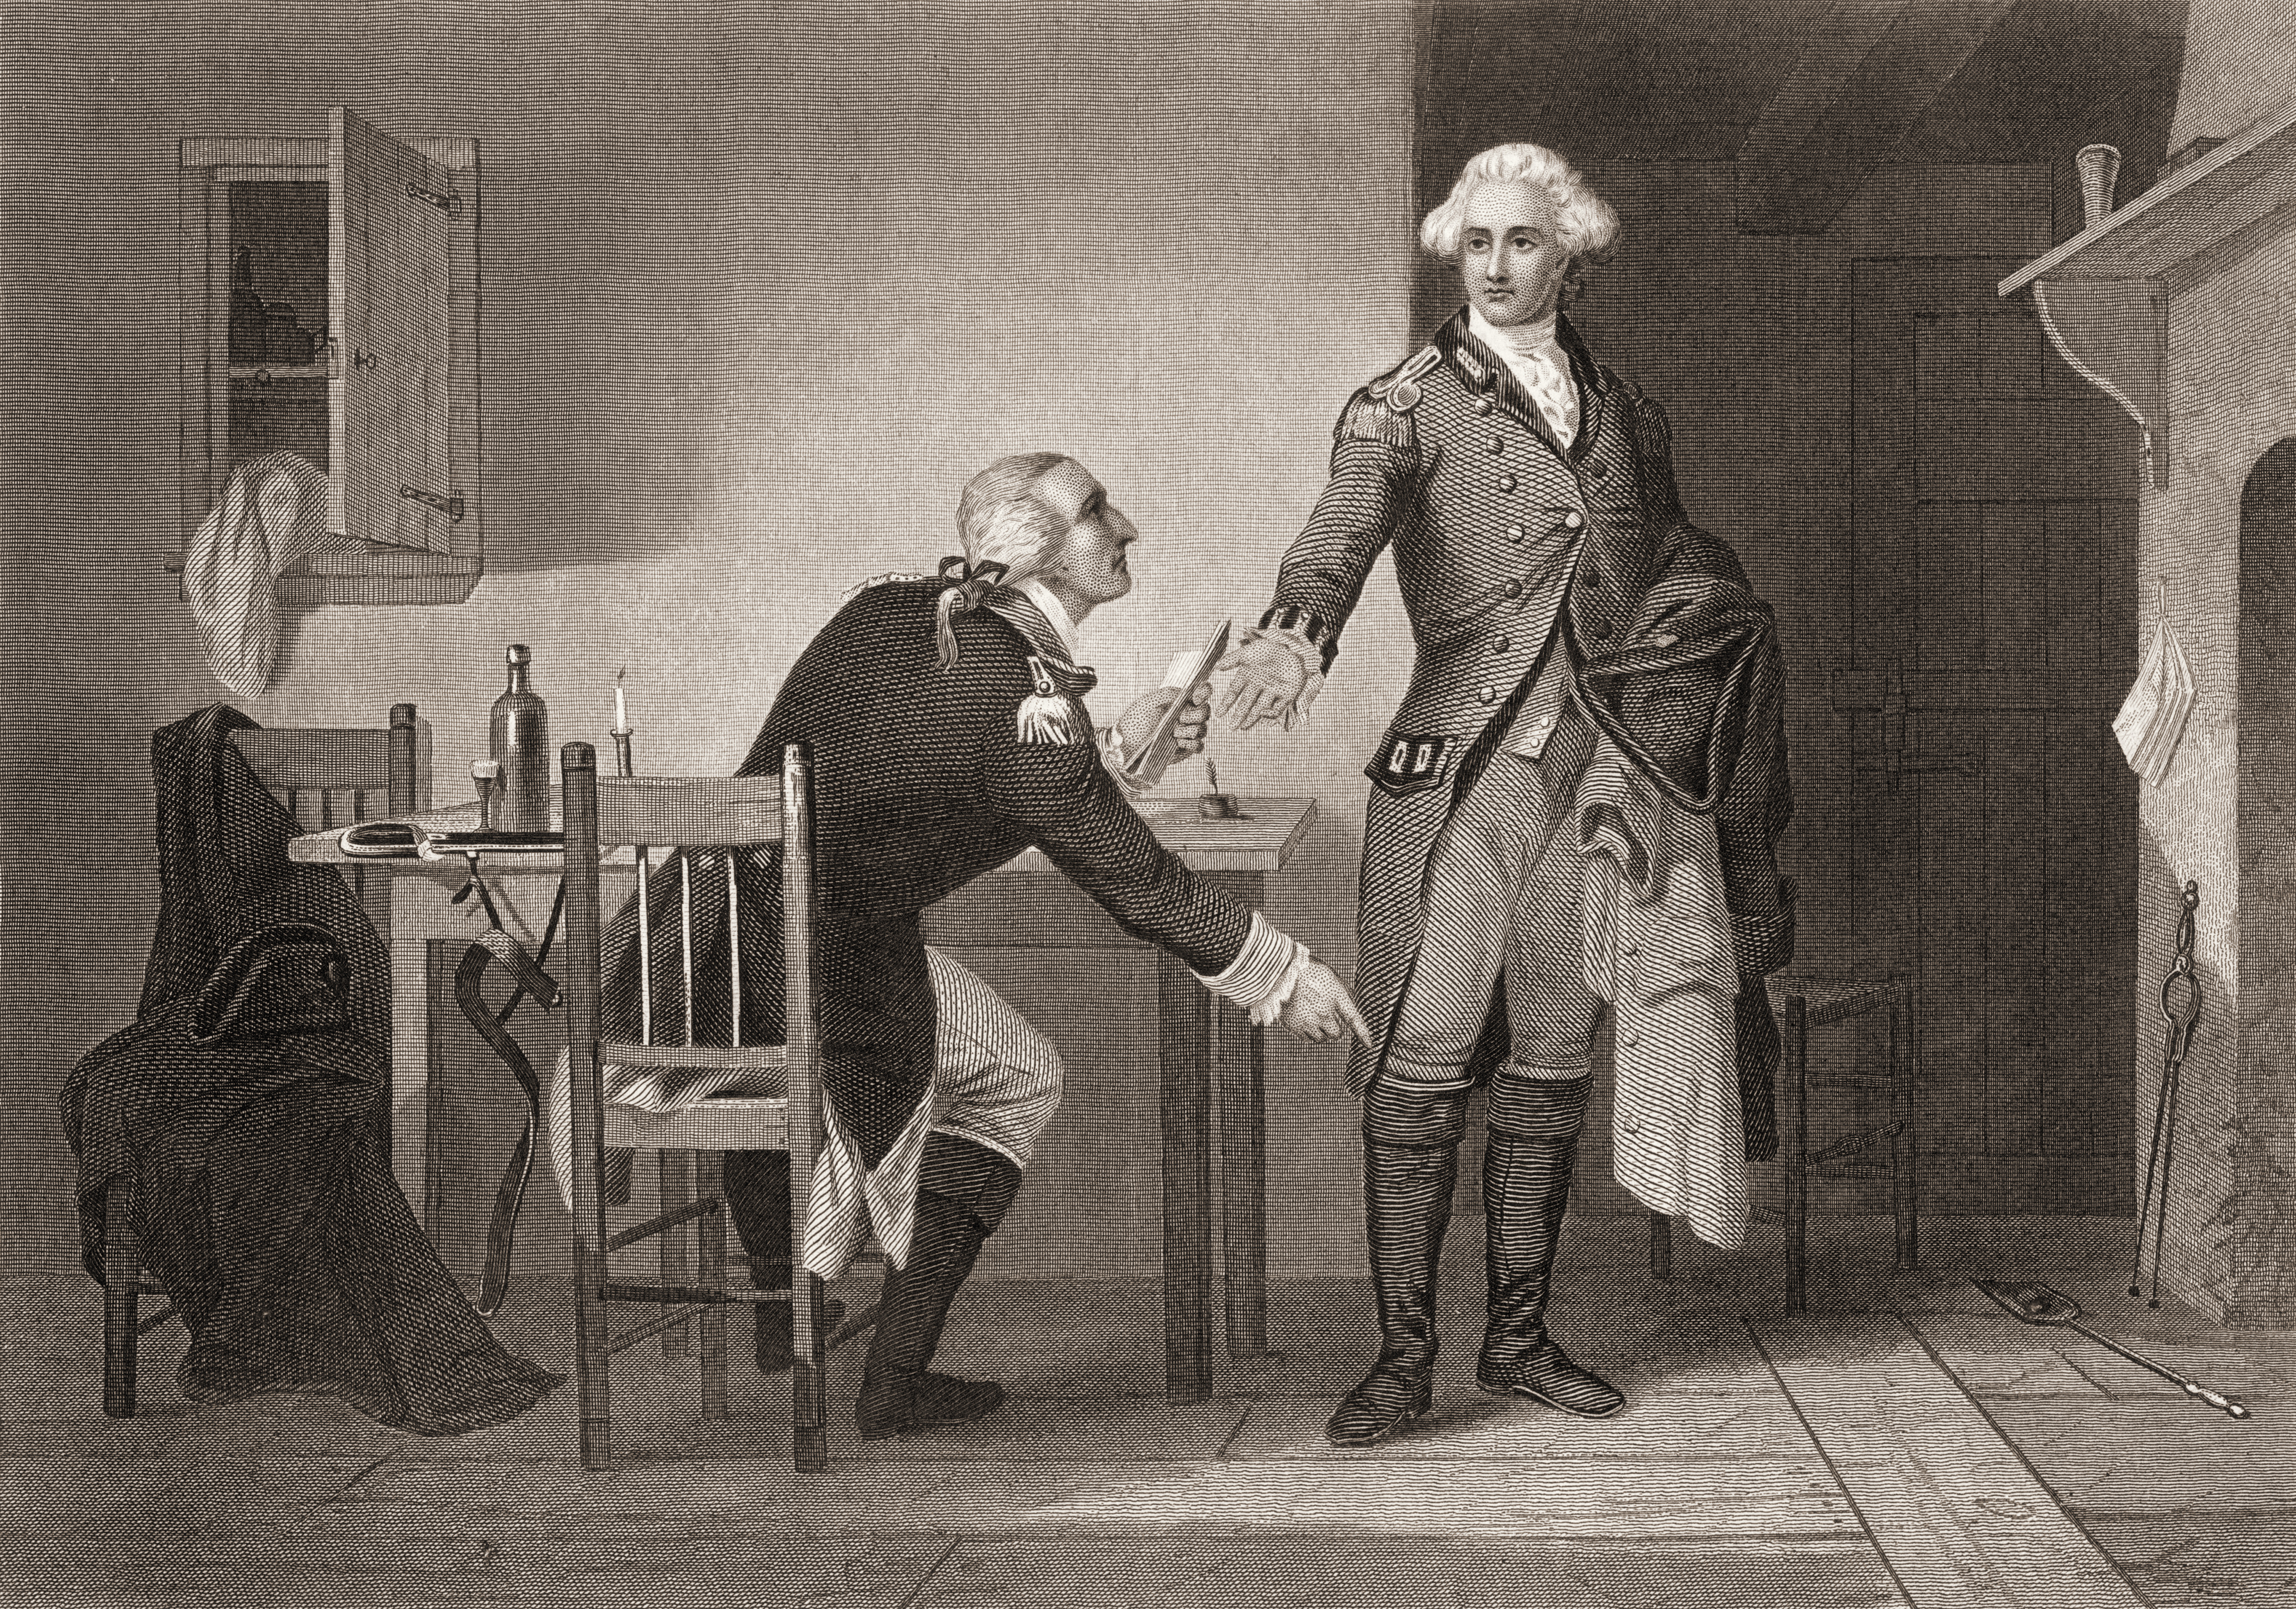 Engraving depicts American army officer Benedict Arnold (1741 - 1801), seated at a table, as he hands papers to British officer John Andre (1750 - 1780) during the American Revolutionary War, mid to late 18th century. Arnold eventually formally switiched sides and joined the British.